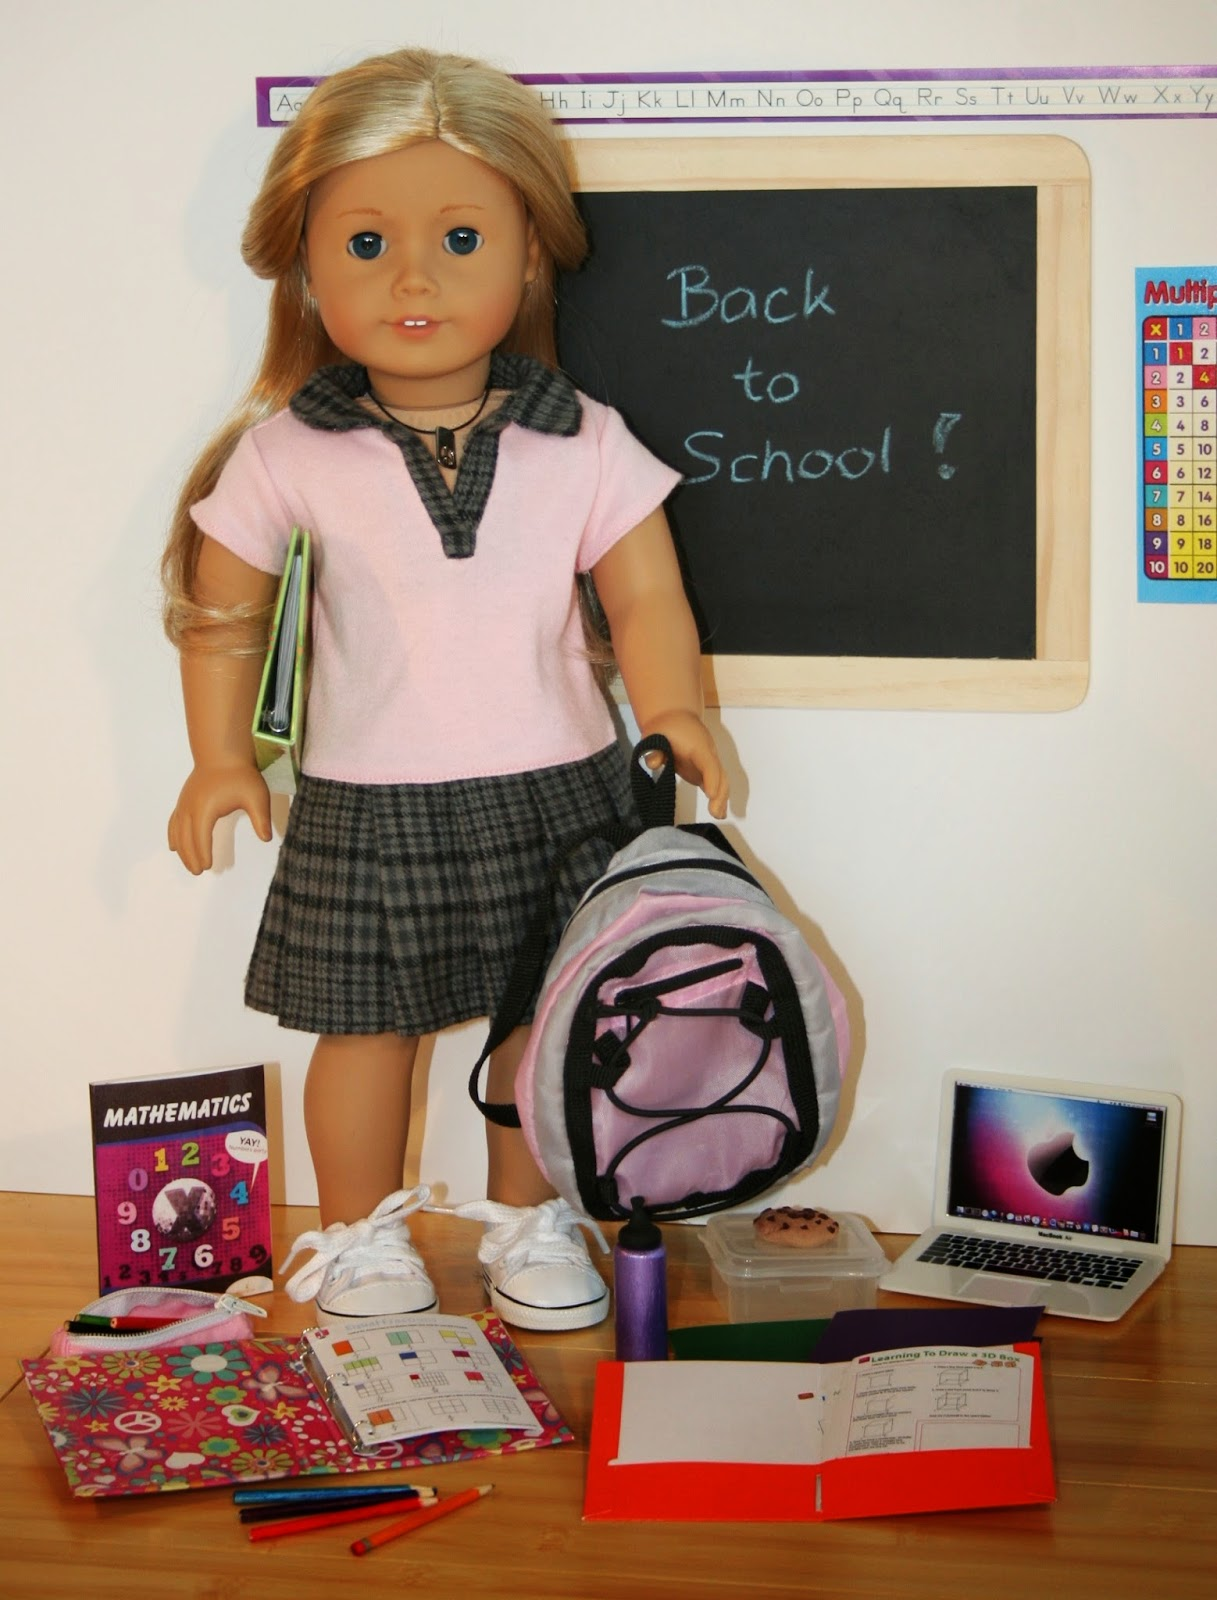 Arts And Crafts For Your American Girl Doll Back To